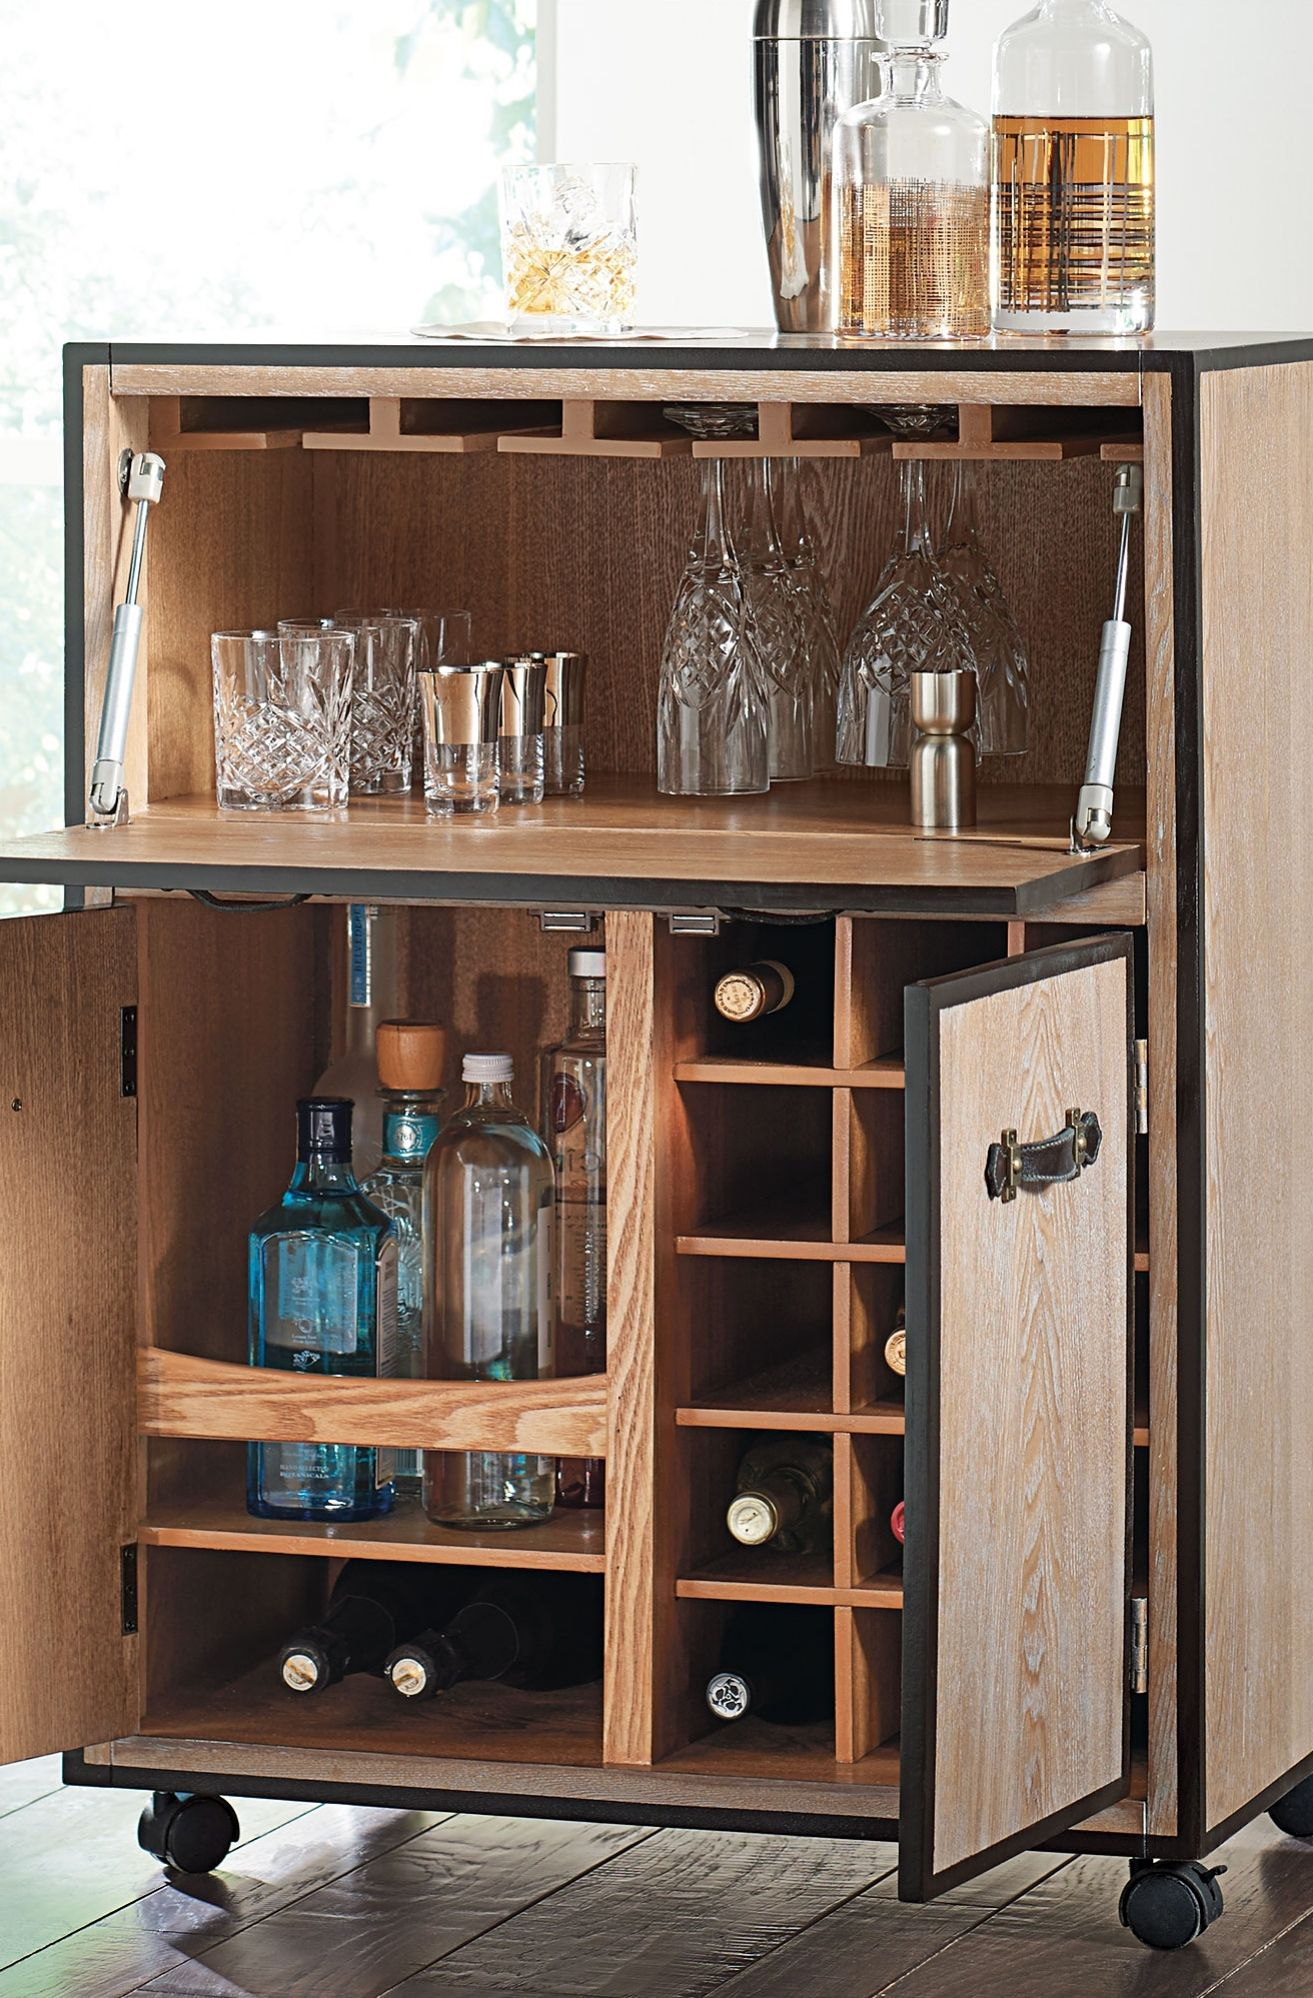 Move The Party From Room To With Our Portable Galway Mobile Bar Cart